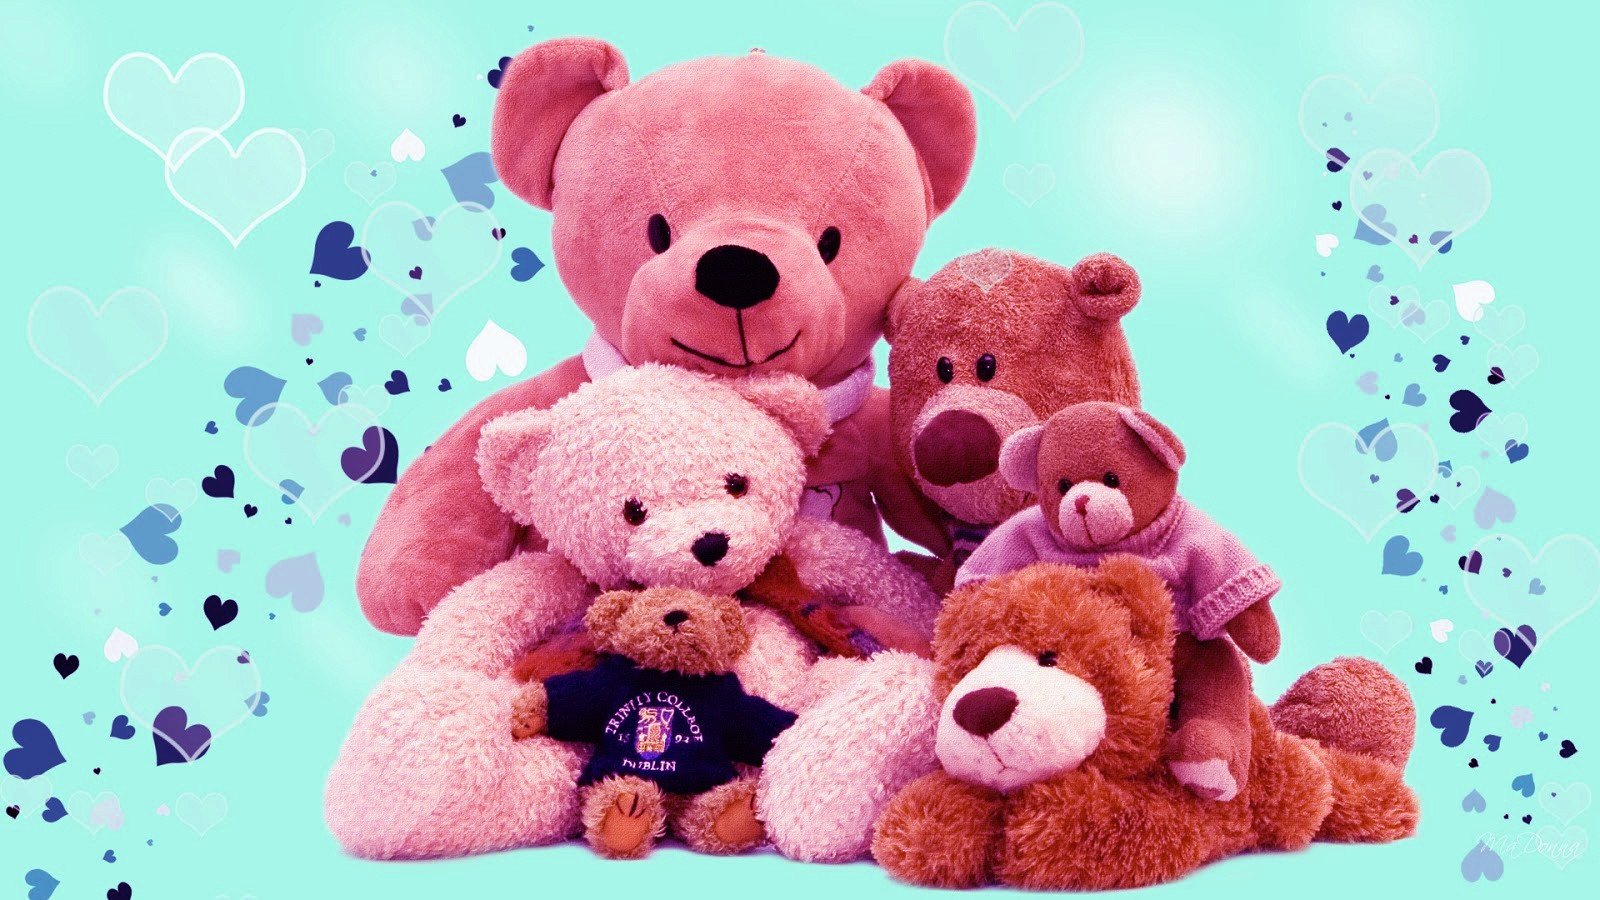 Happy Teddy Day 2017 Images wallpaers pictures (14)